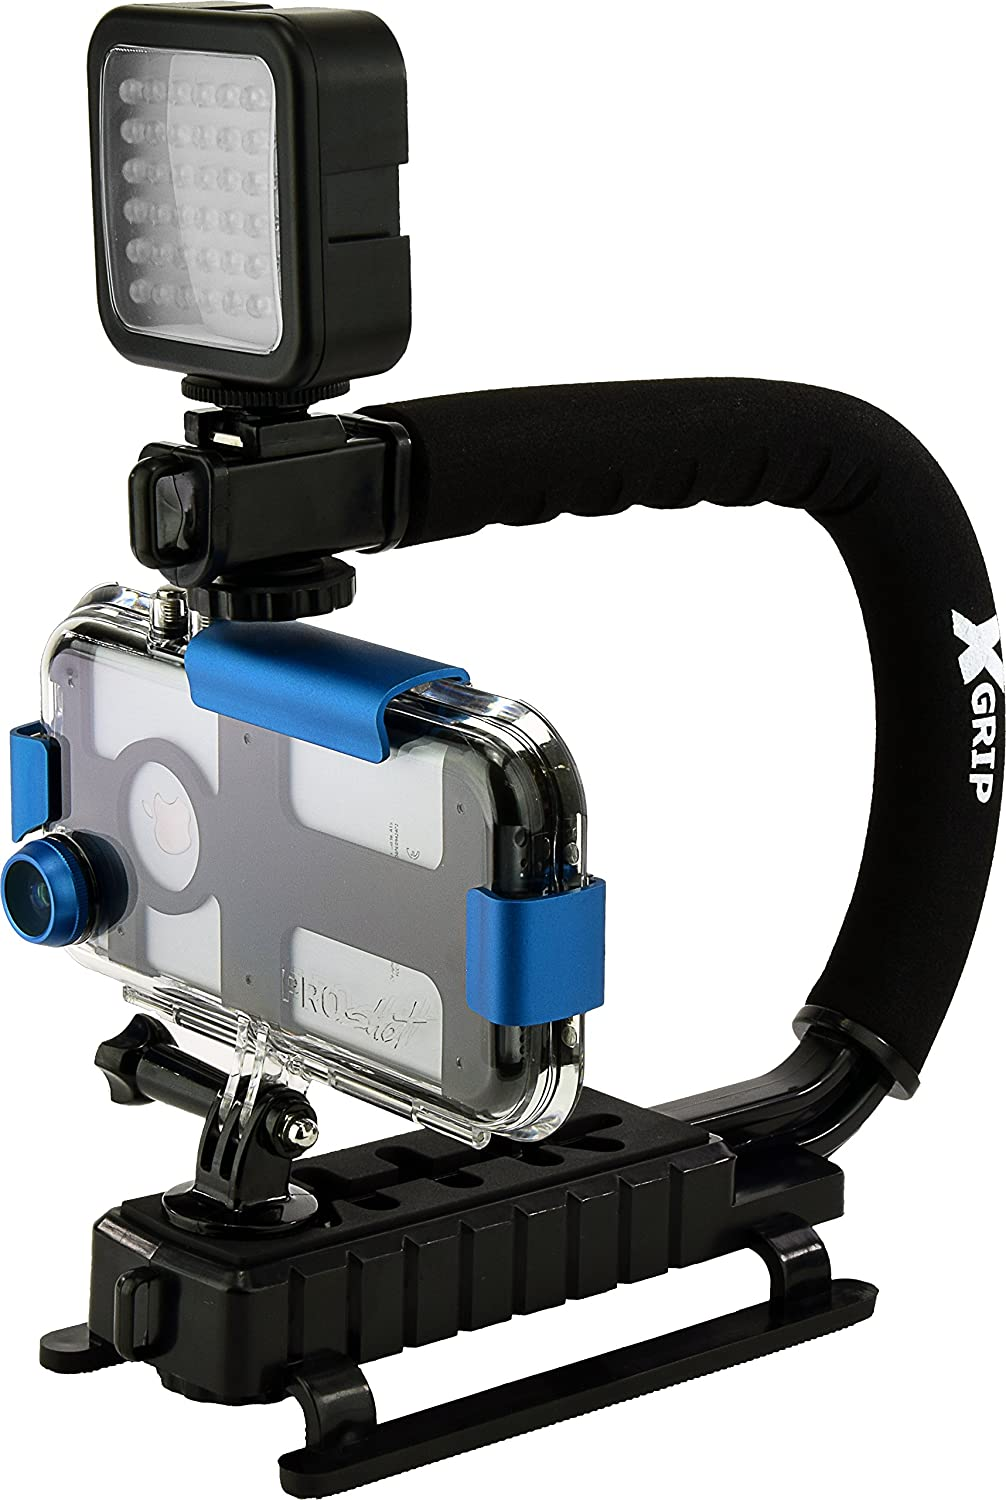 buy online d24c2 5a16e Amazon.com: ProShot Extreme 100ft Underwater Action Camera Case for ...